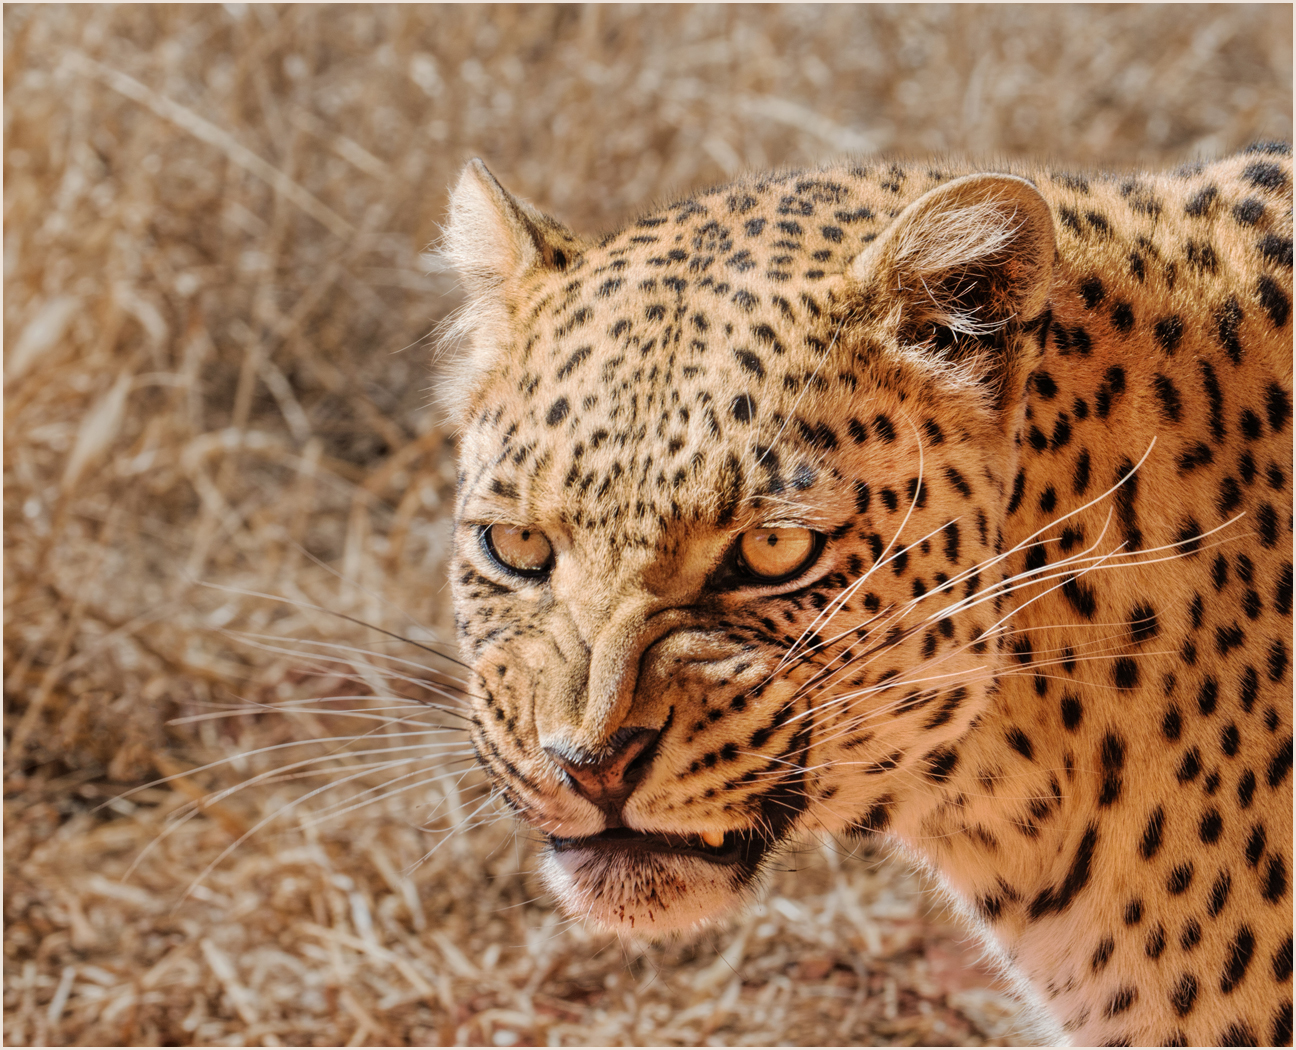 1_Leopard with Attitude_Audrey Couchman.jpg